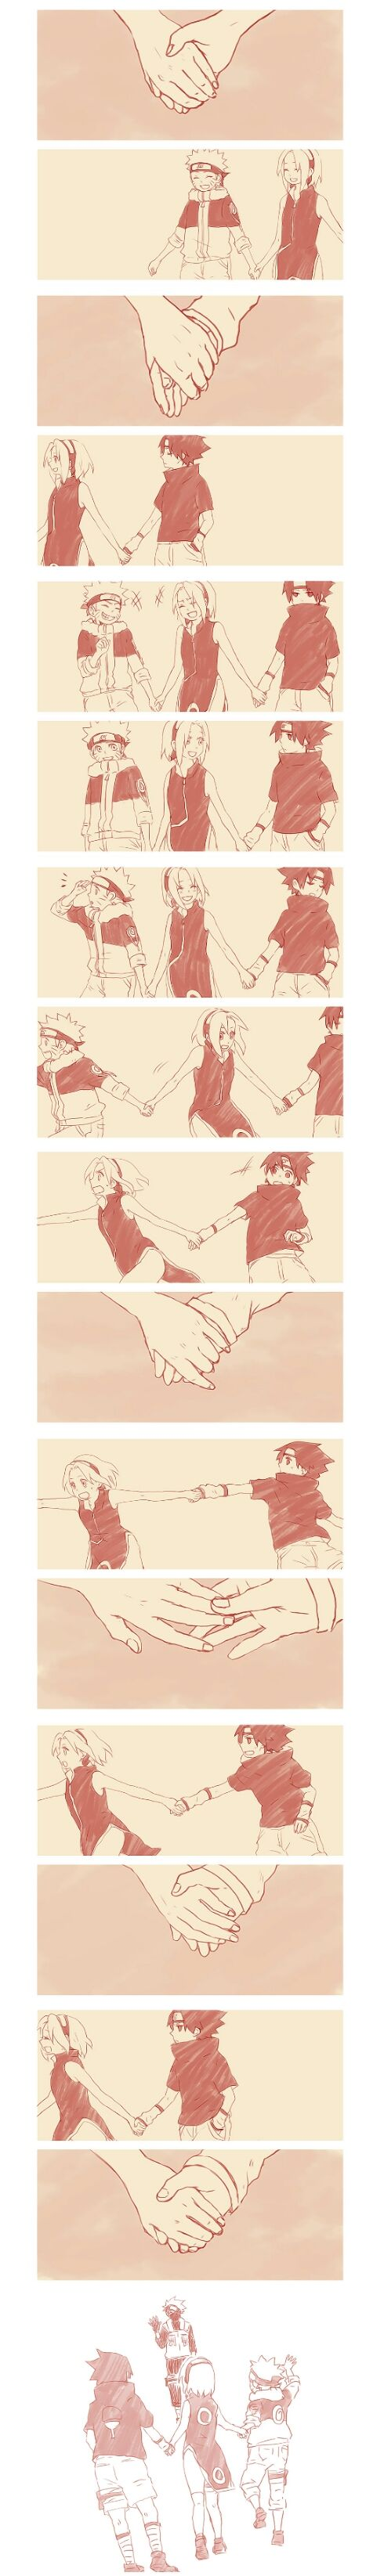 Team 7. I think this shows that Sakura is the link between Naruto and Sasuke, that keeps team 7 together.